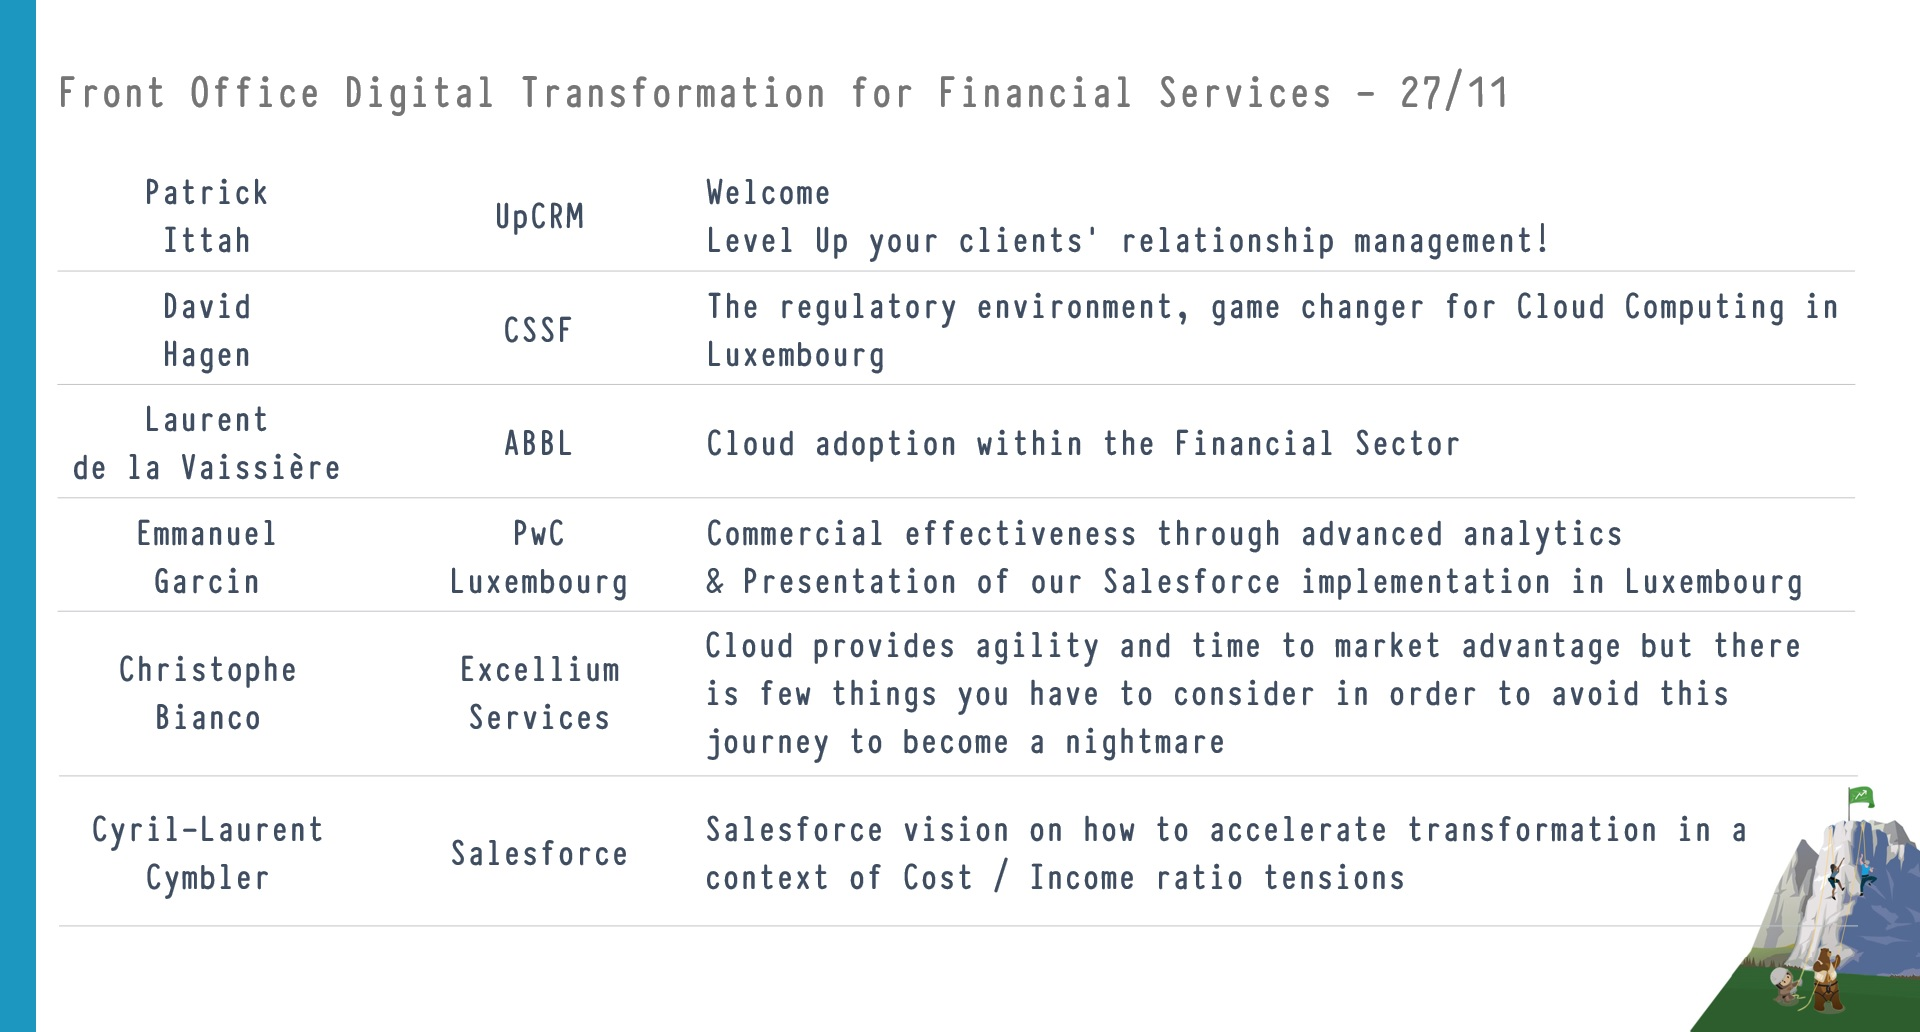 Front Office Digital Transformation for Financial Services - Agenda